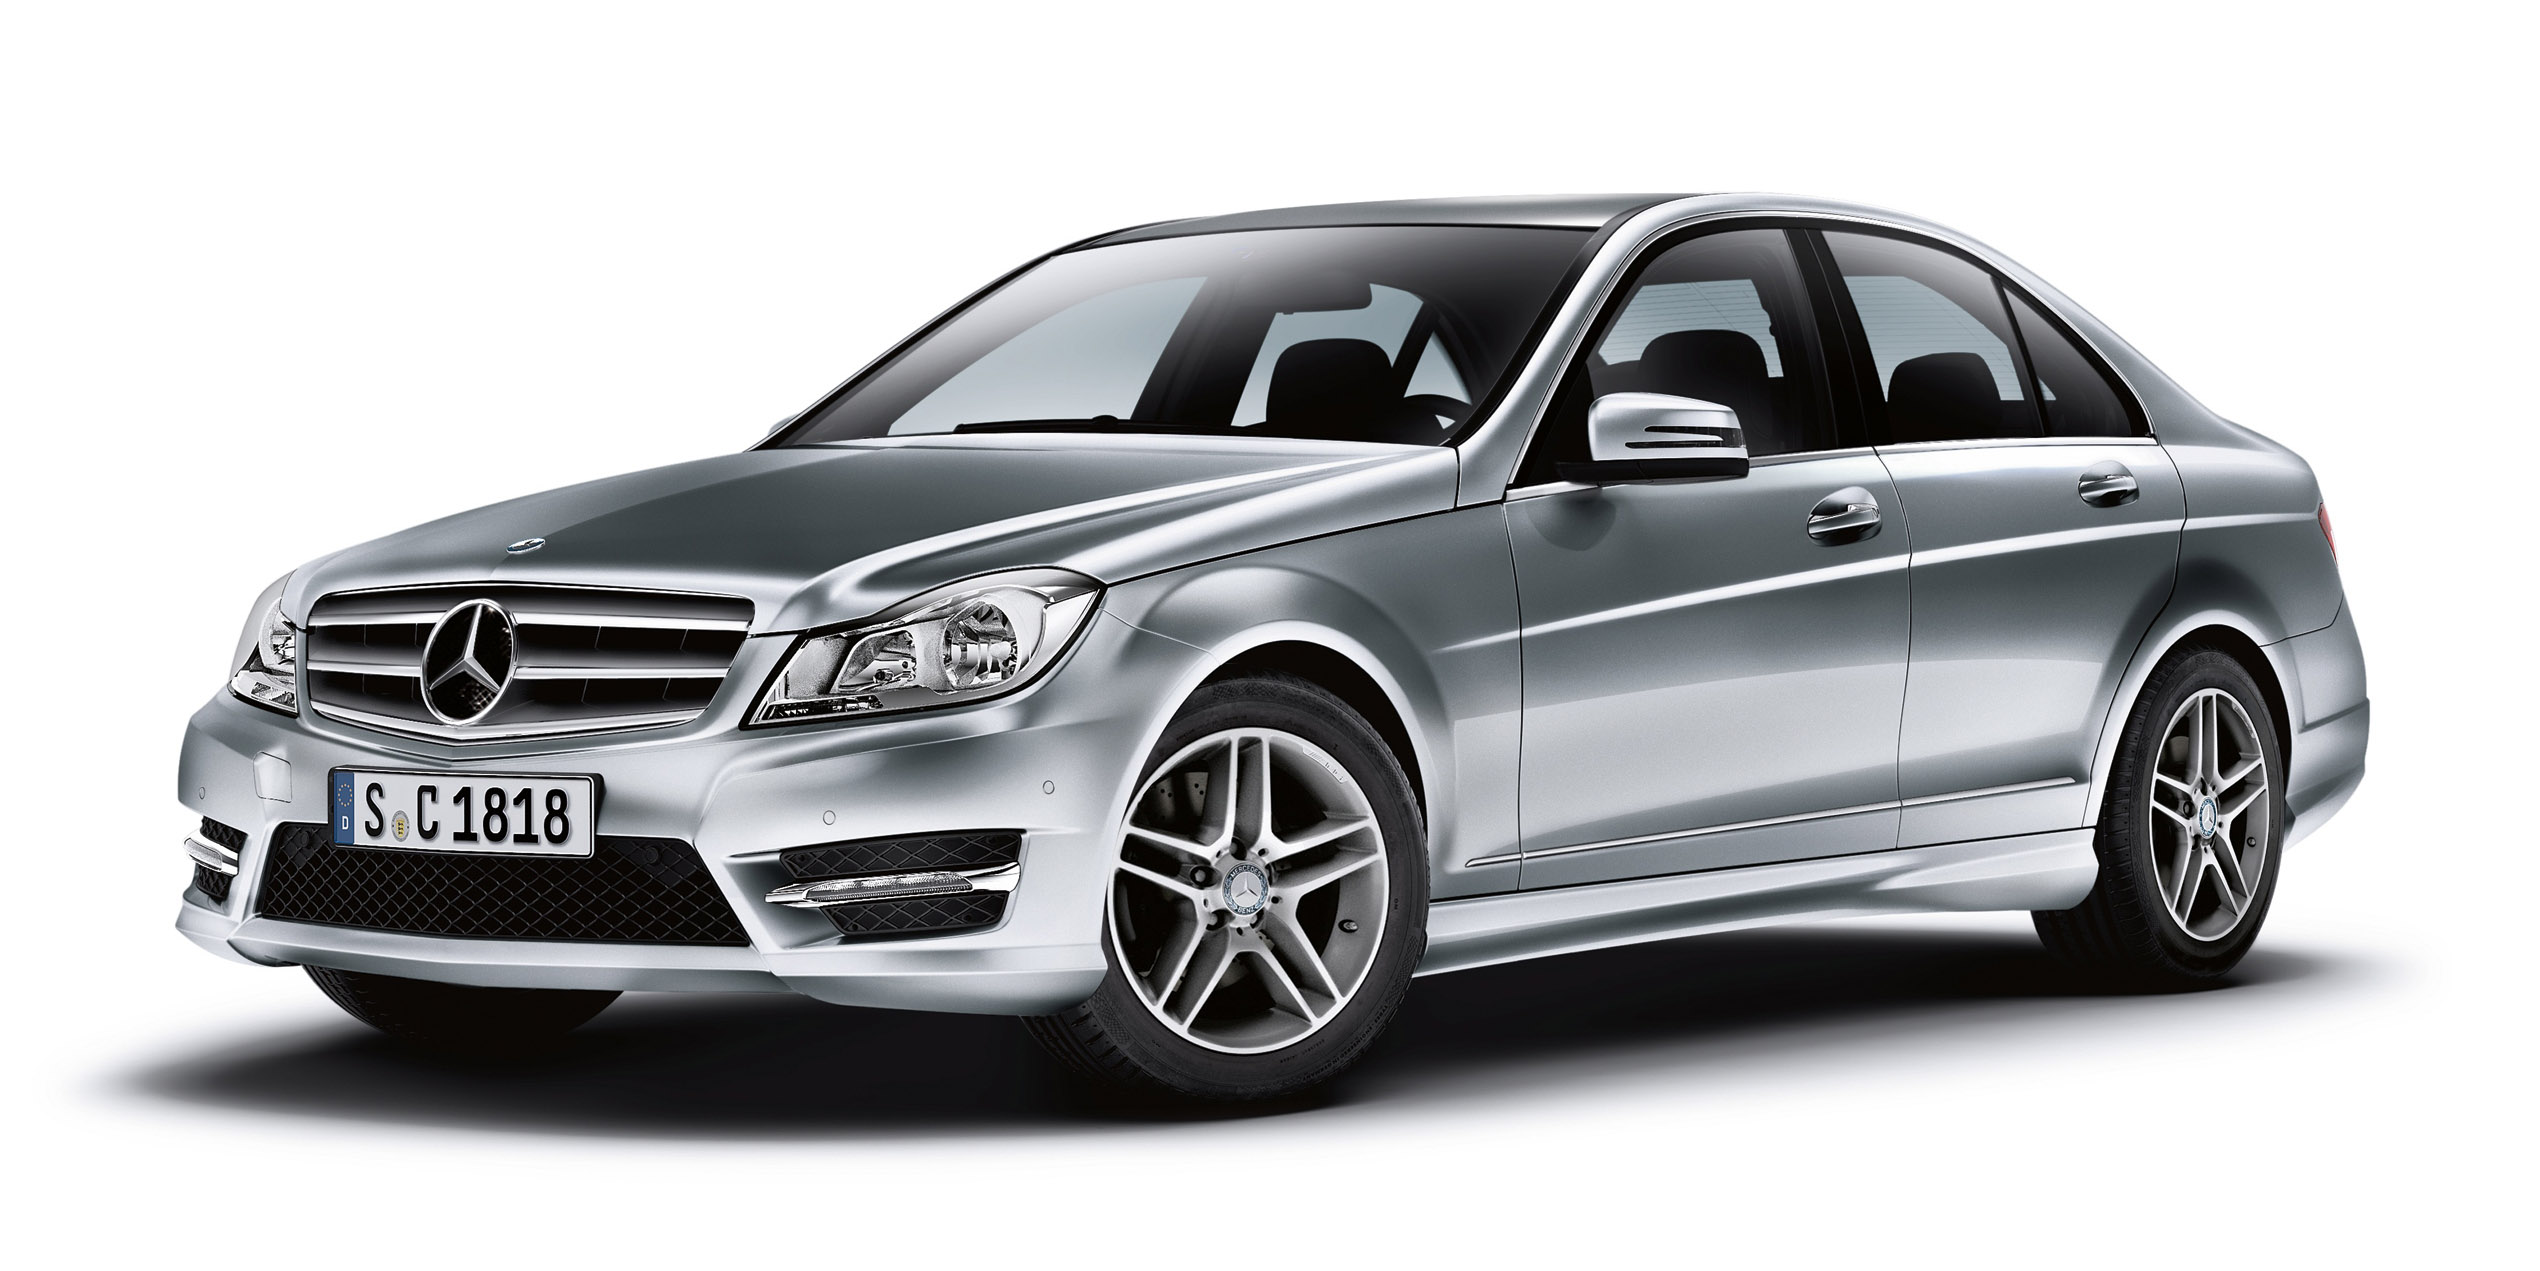 Mercedes Benz C Class More Upgrades For The W204 Image 122295